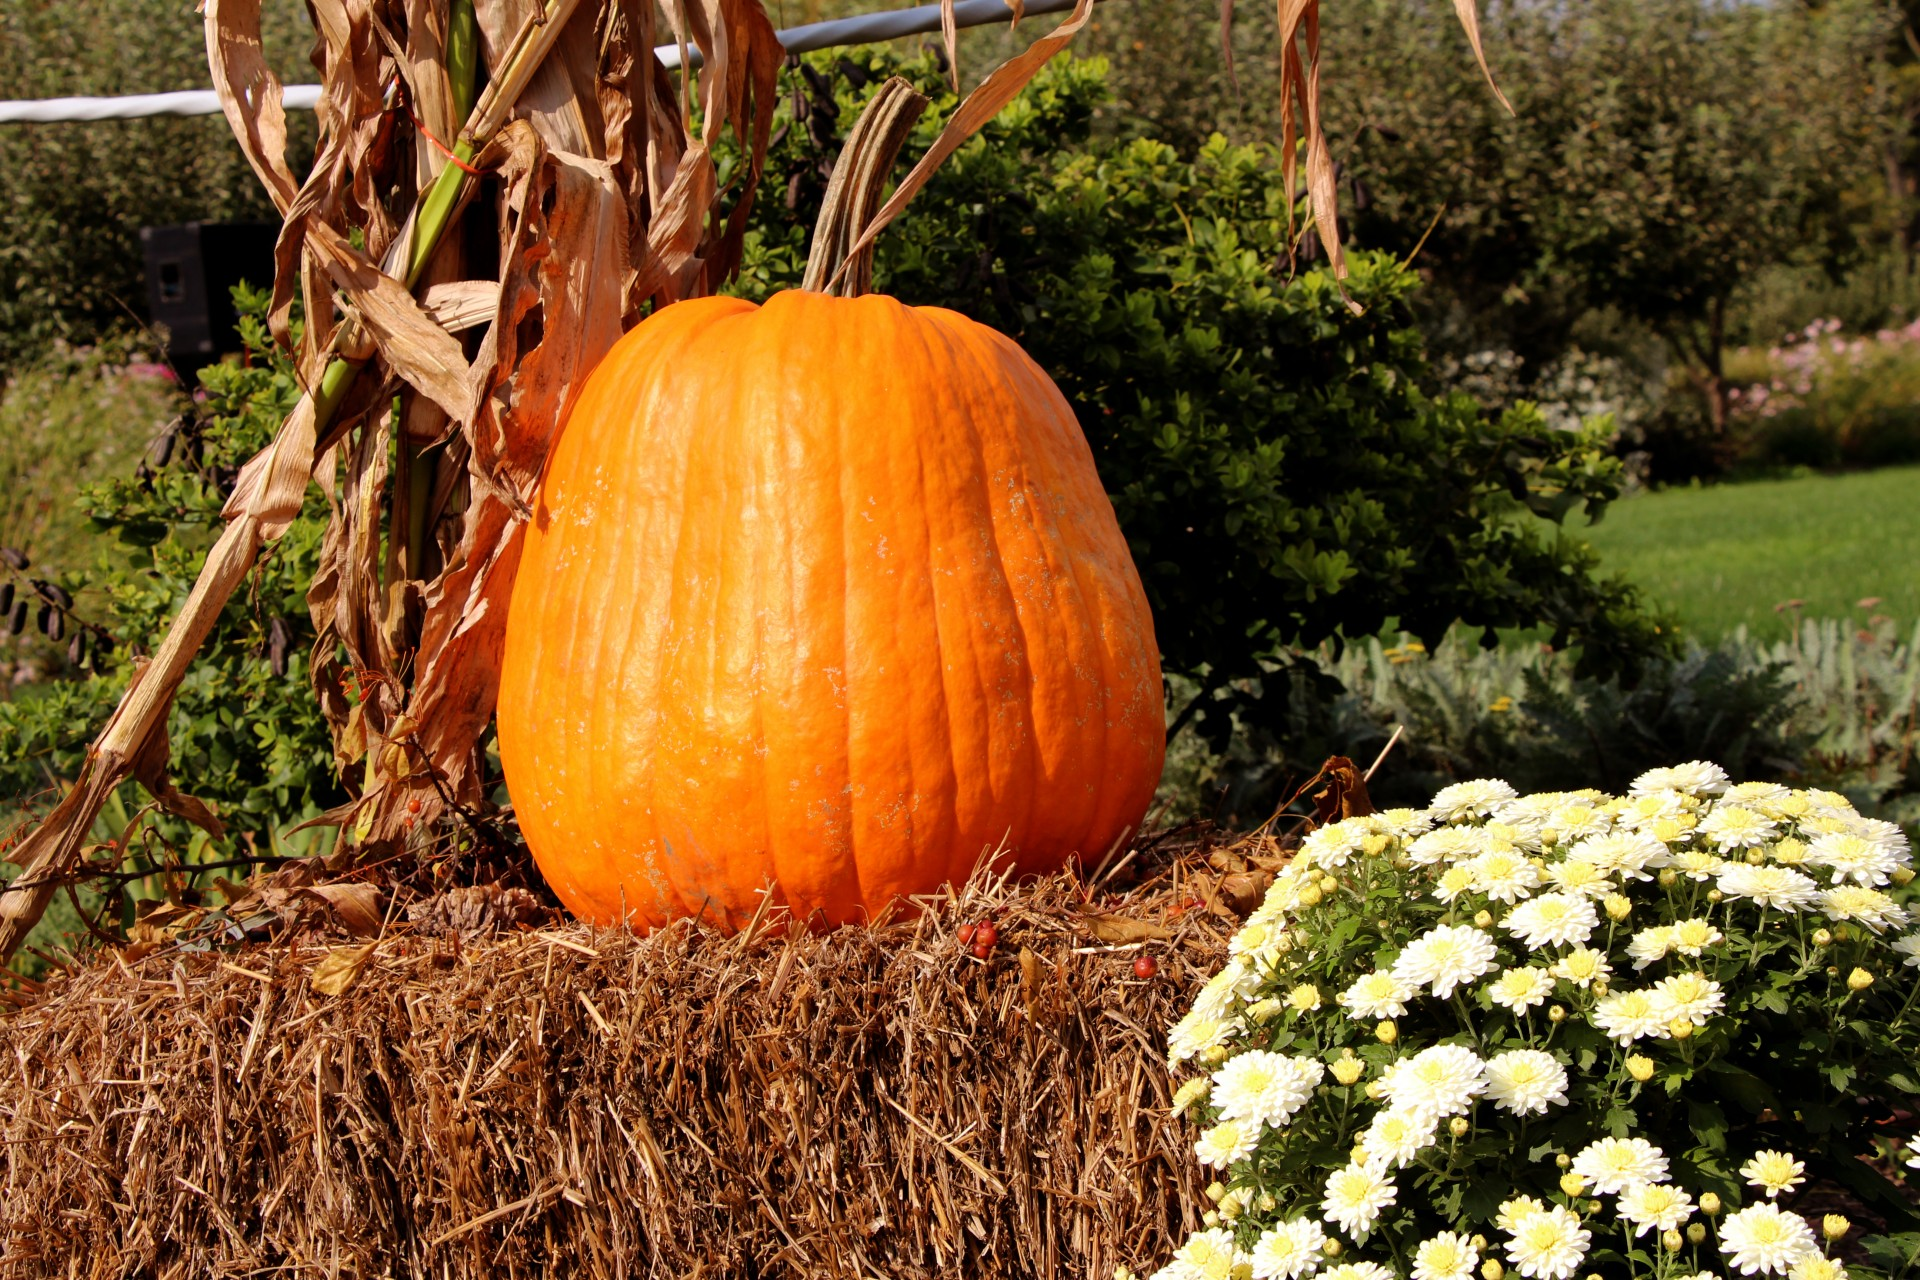 Fall Harvest Wallpaper Images Pumpkin On Hay Bale Free Stock Photo Public Domain Pictures